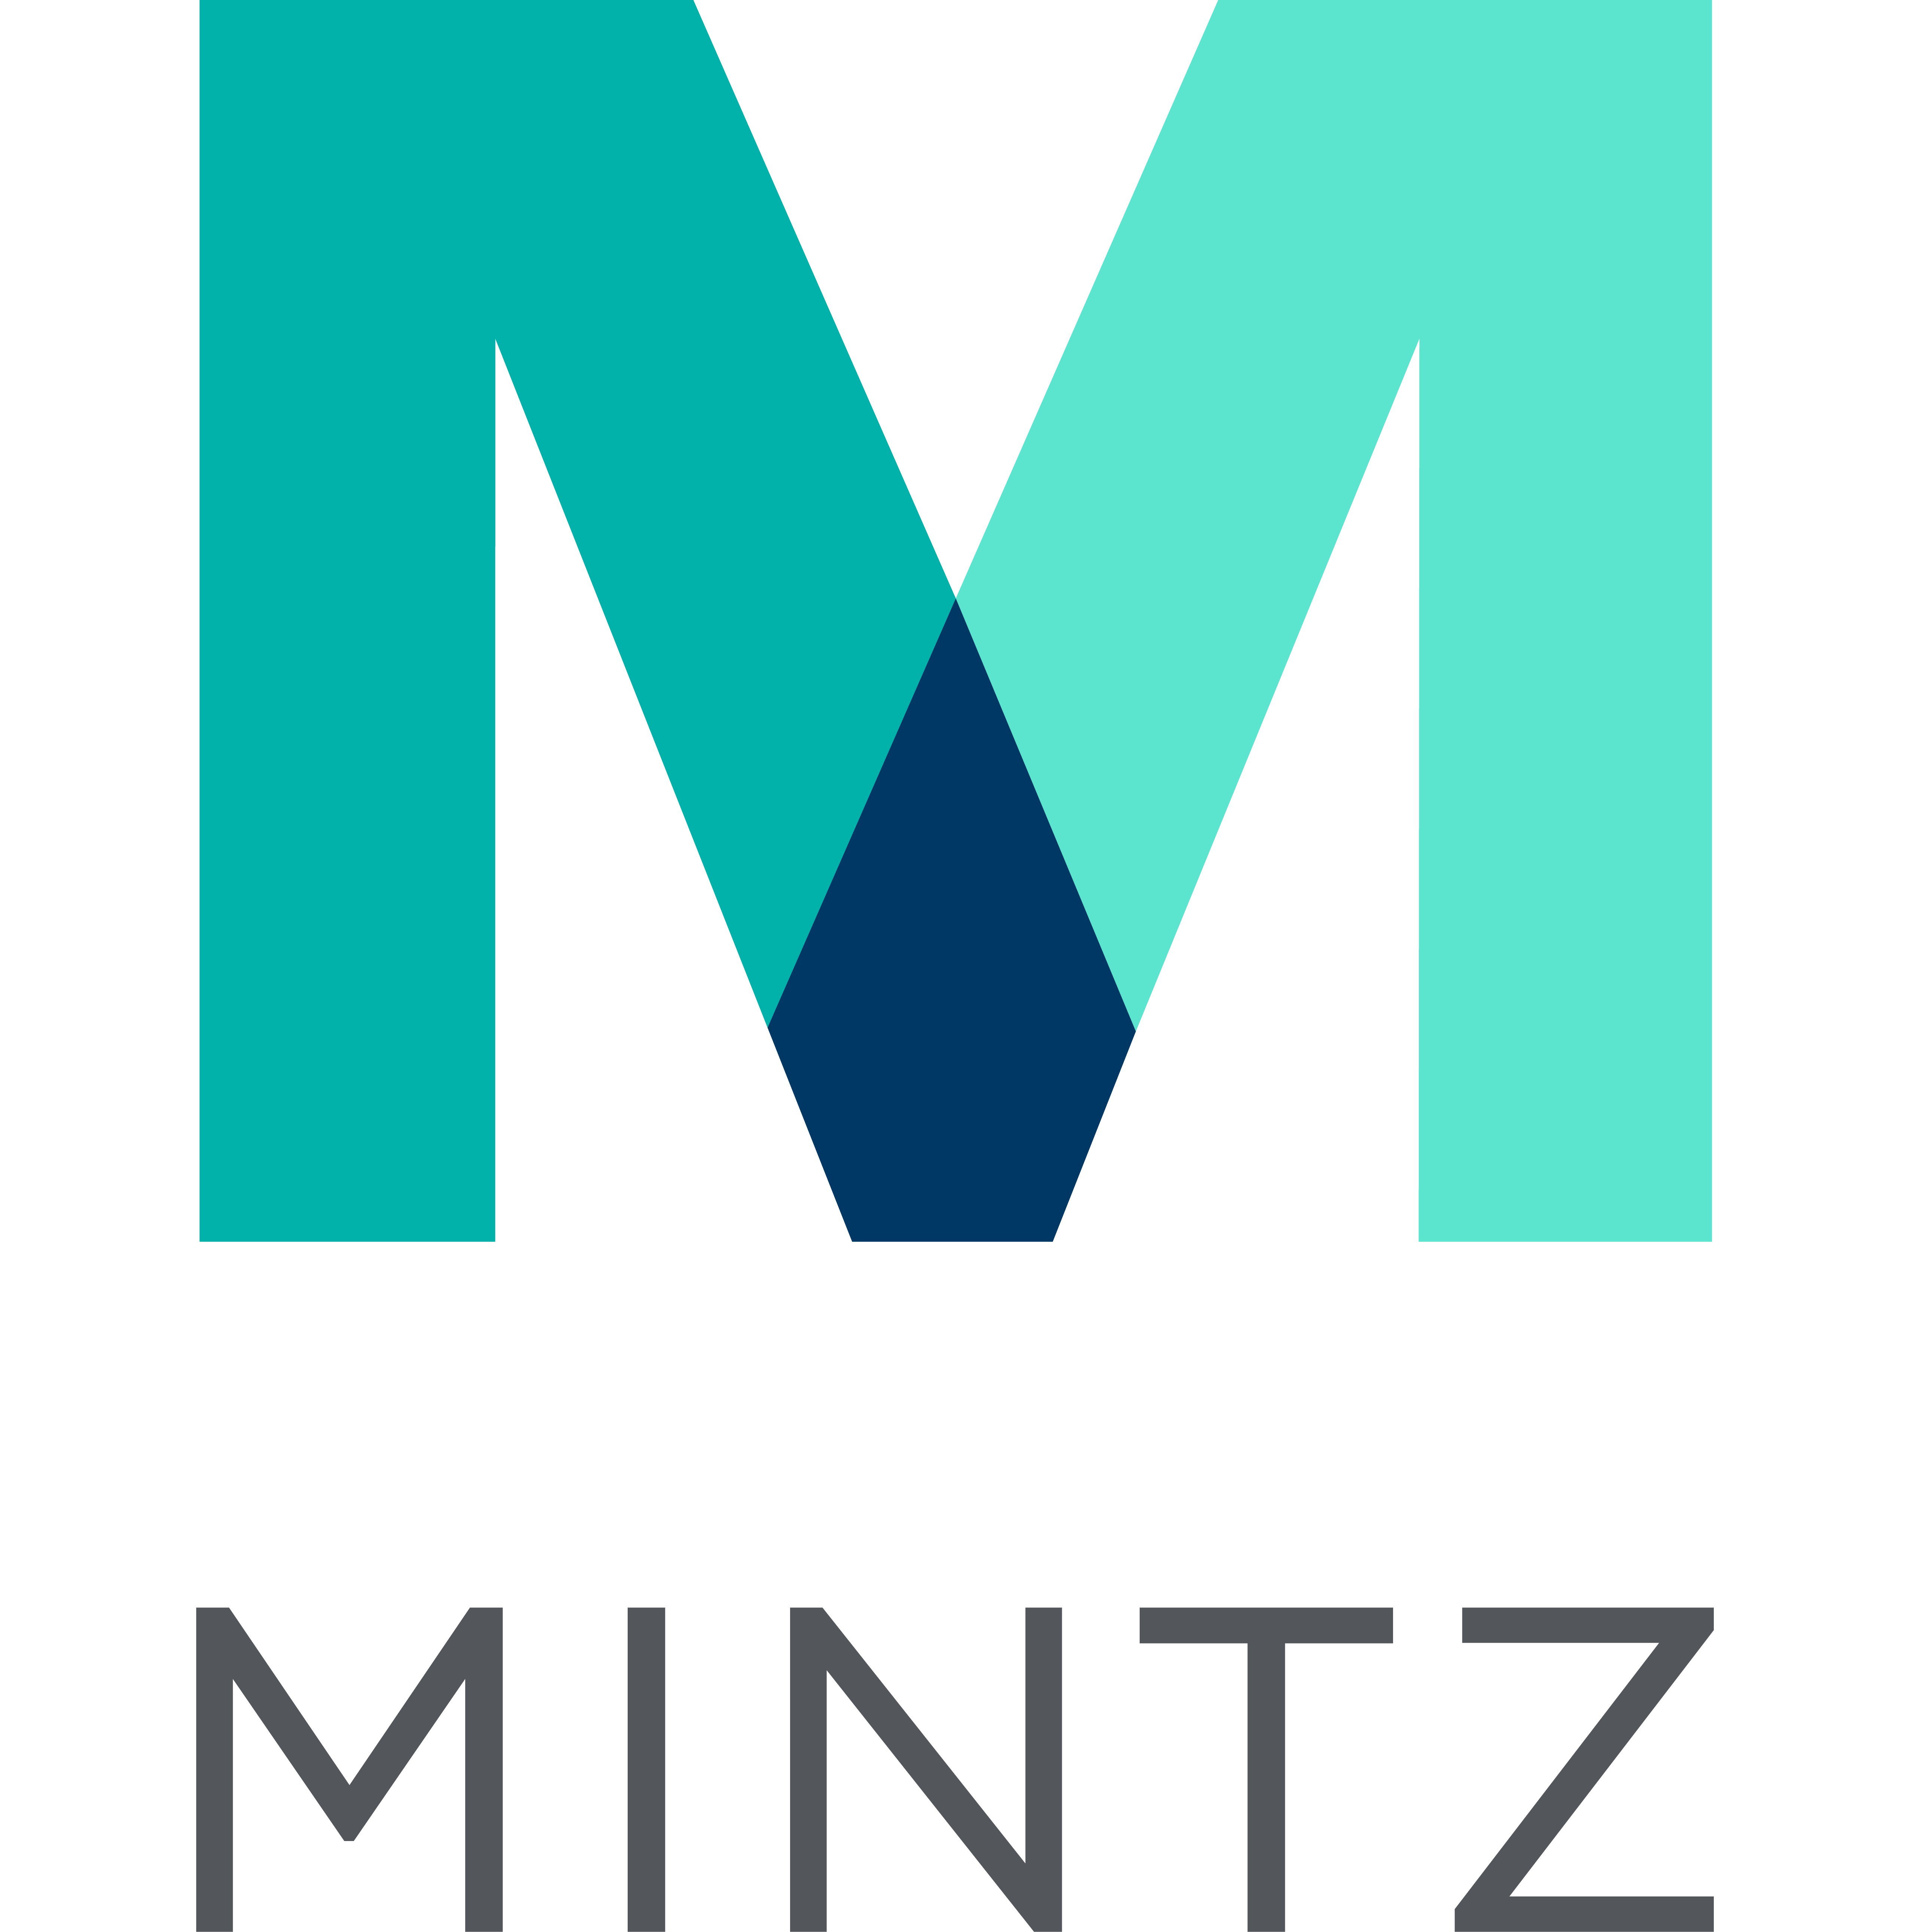 Mintz Logo_Mintz is an Am Law 100 law firm with 500 attorneys serving clients worldwide.